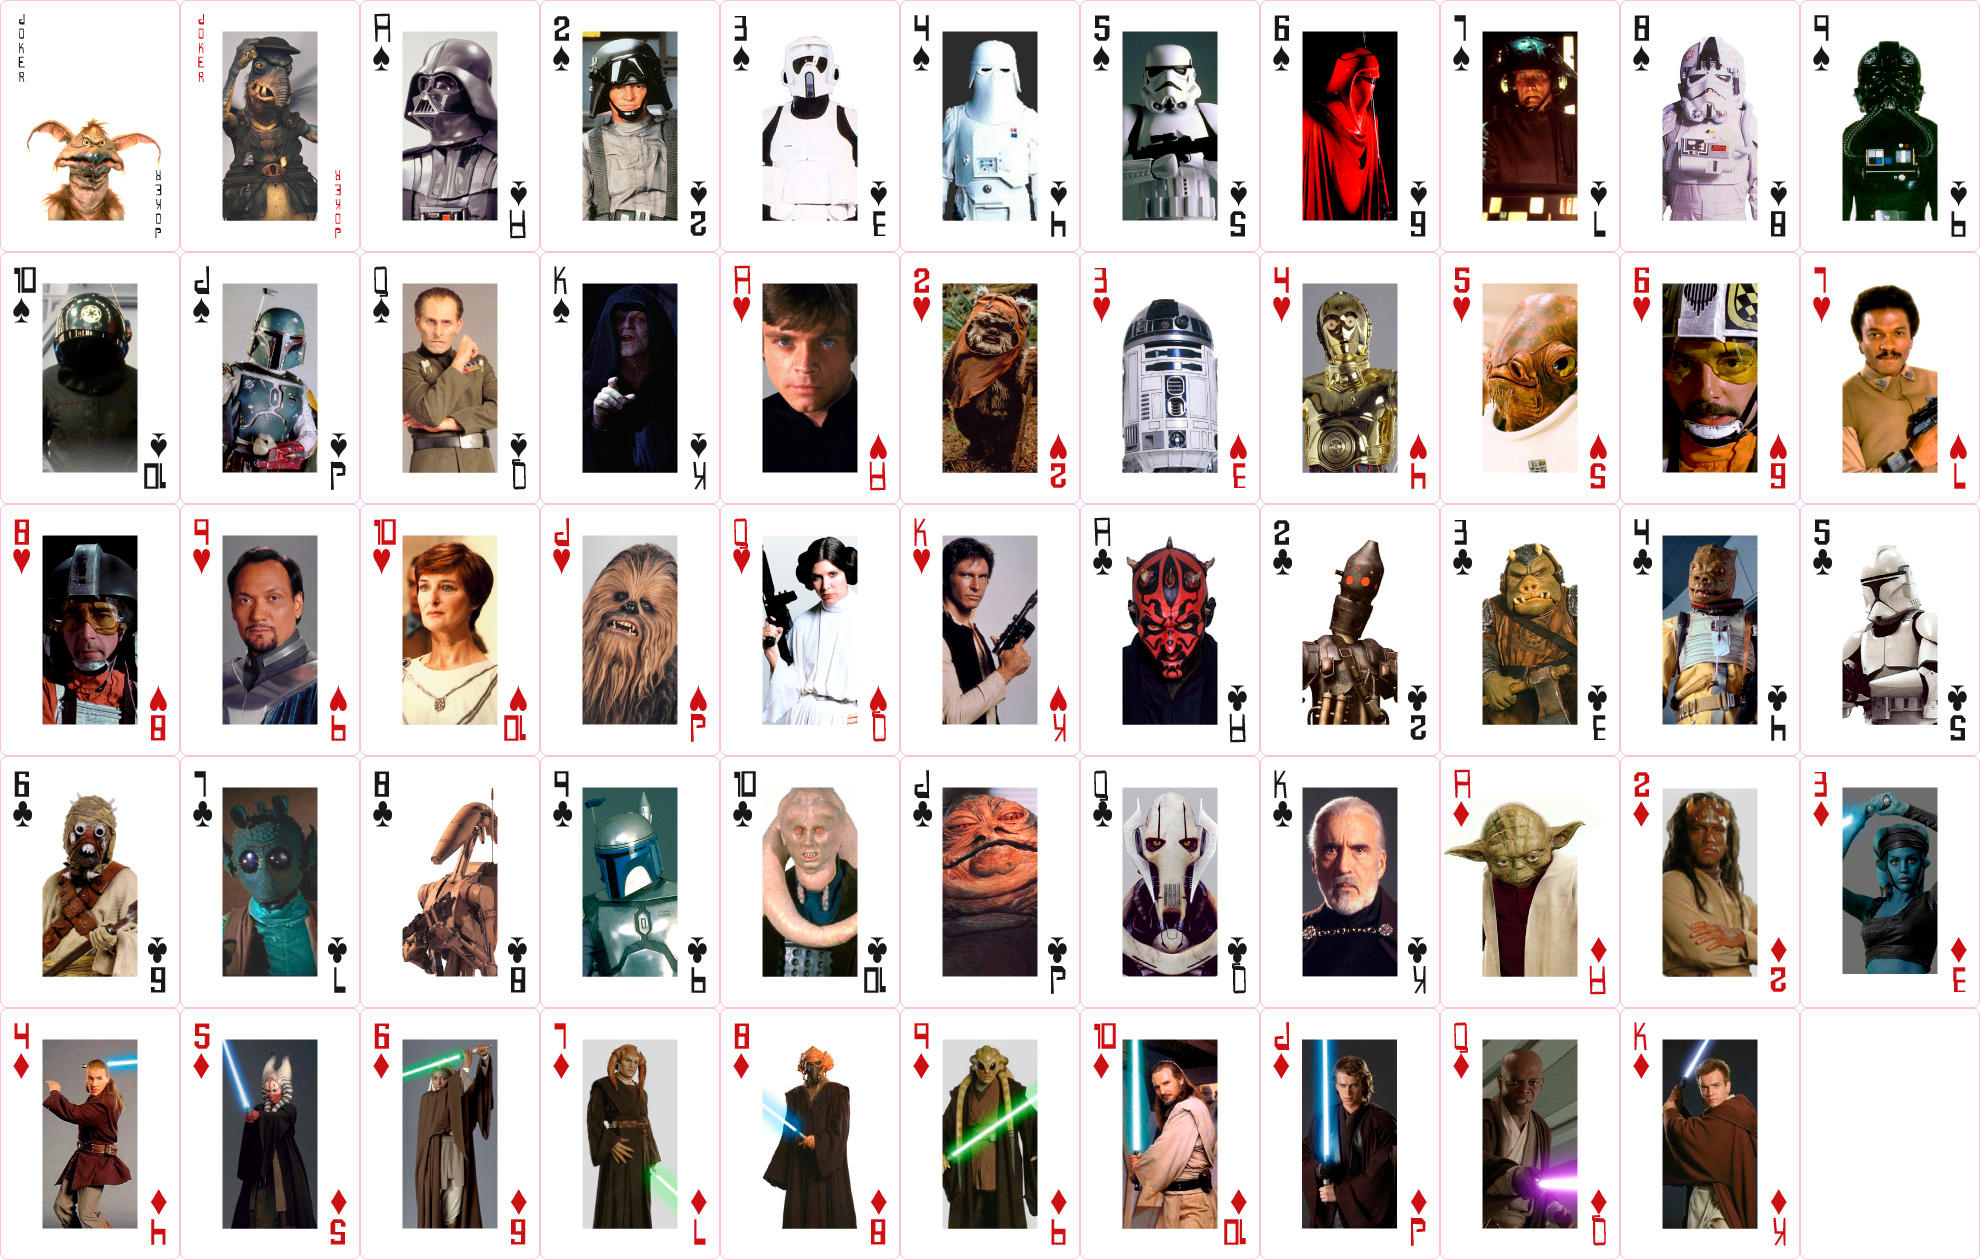 Star Wars Playing Cards By Jamesrudge On Deviantart